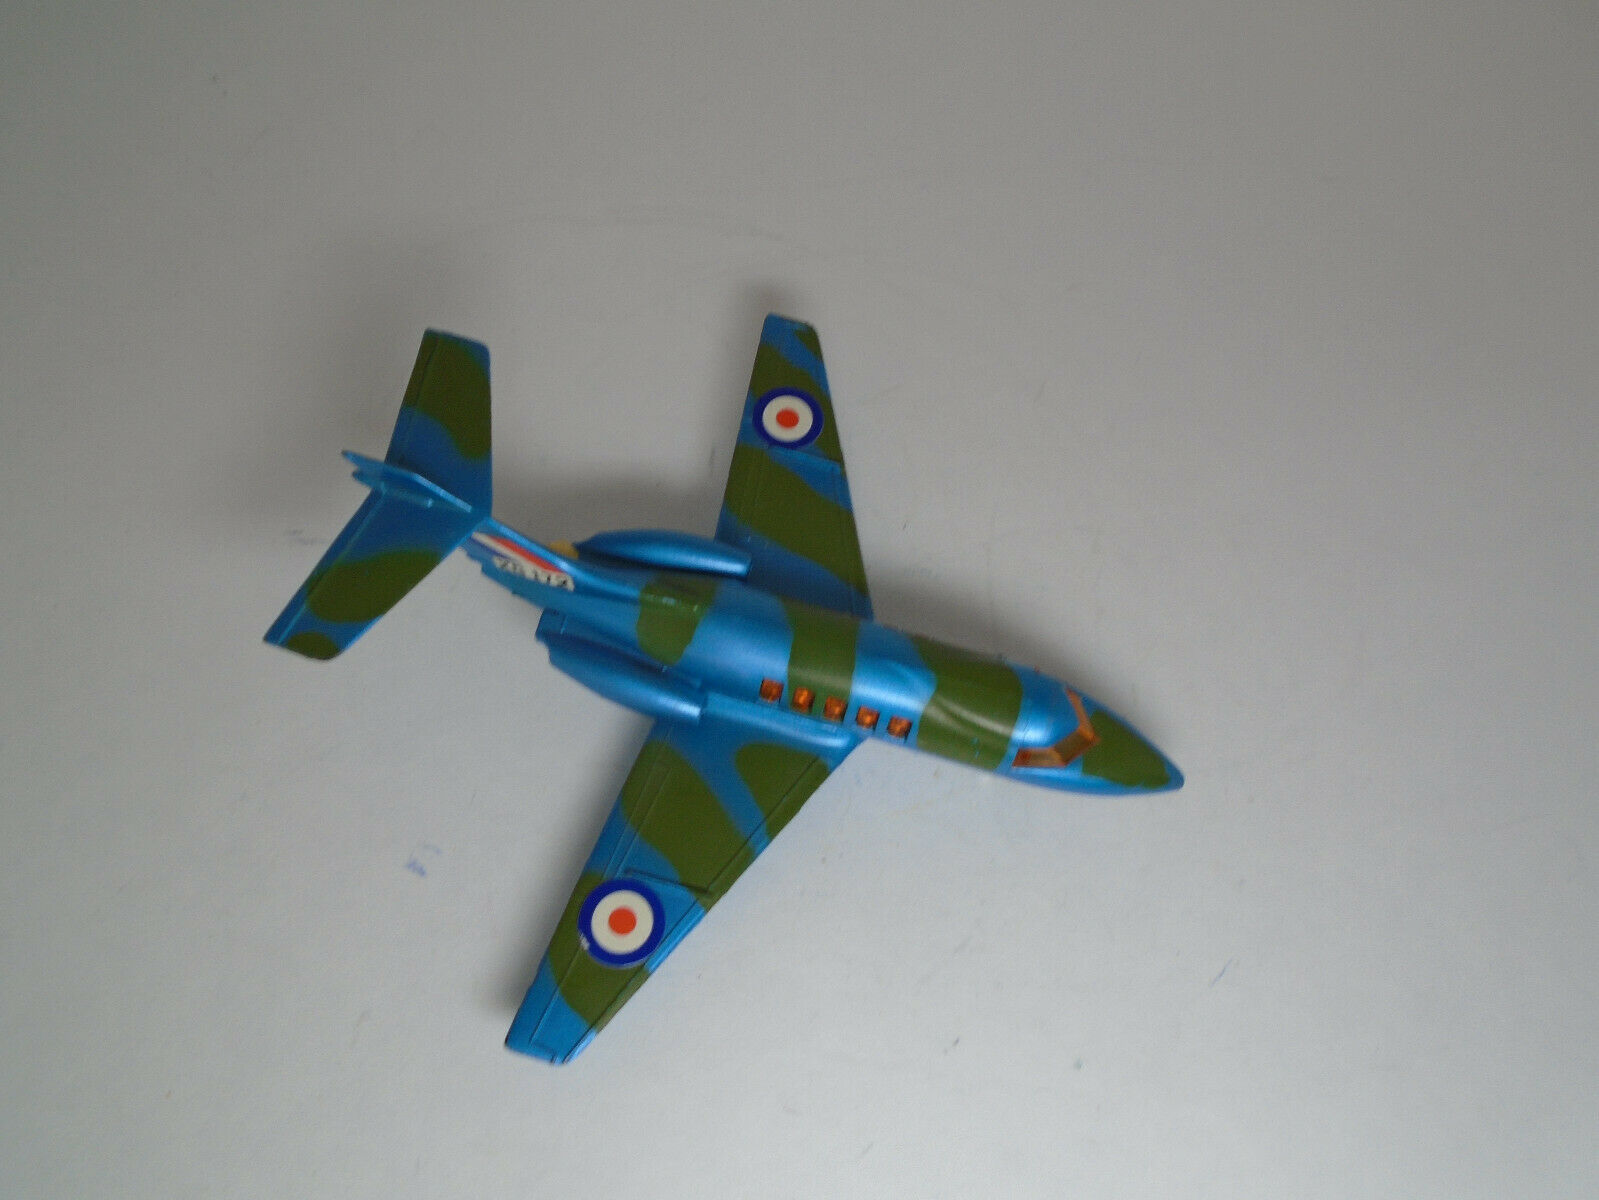 Dinky Toys HAWKER-SIDDELY RAF DOMINIE JET AIRCARFT. NEAR MINT, RARE